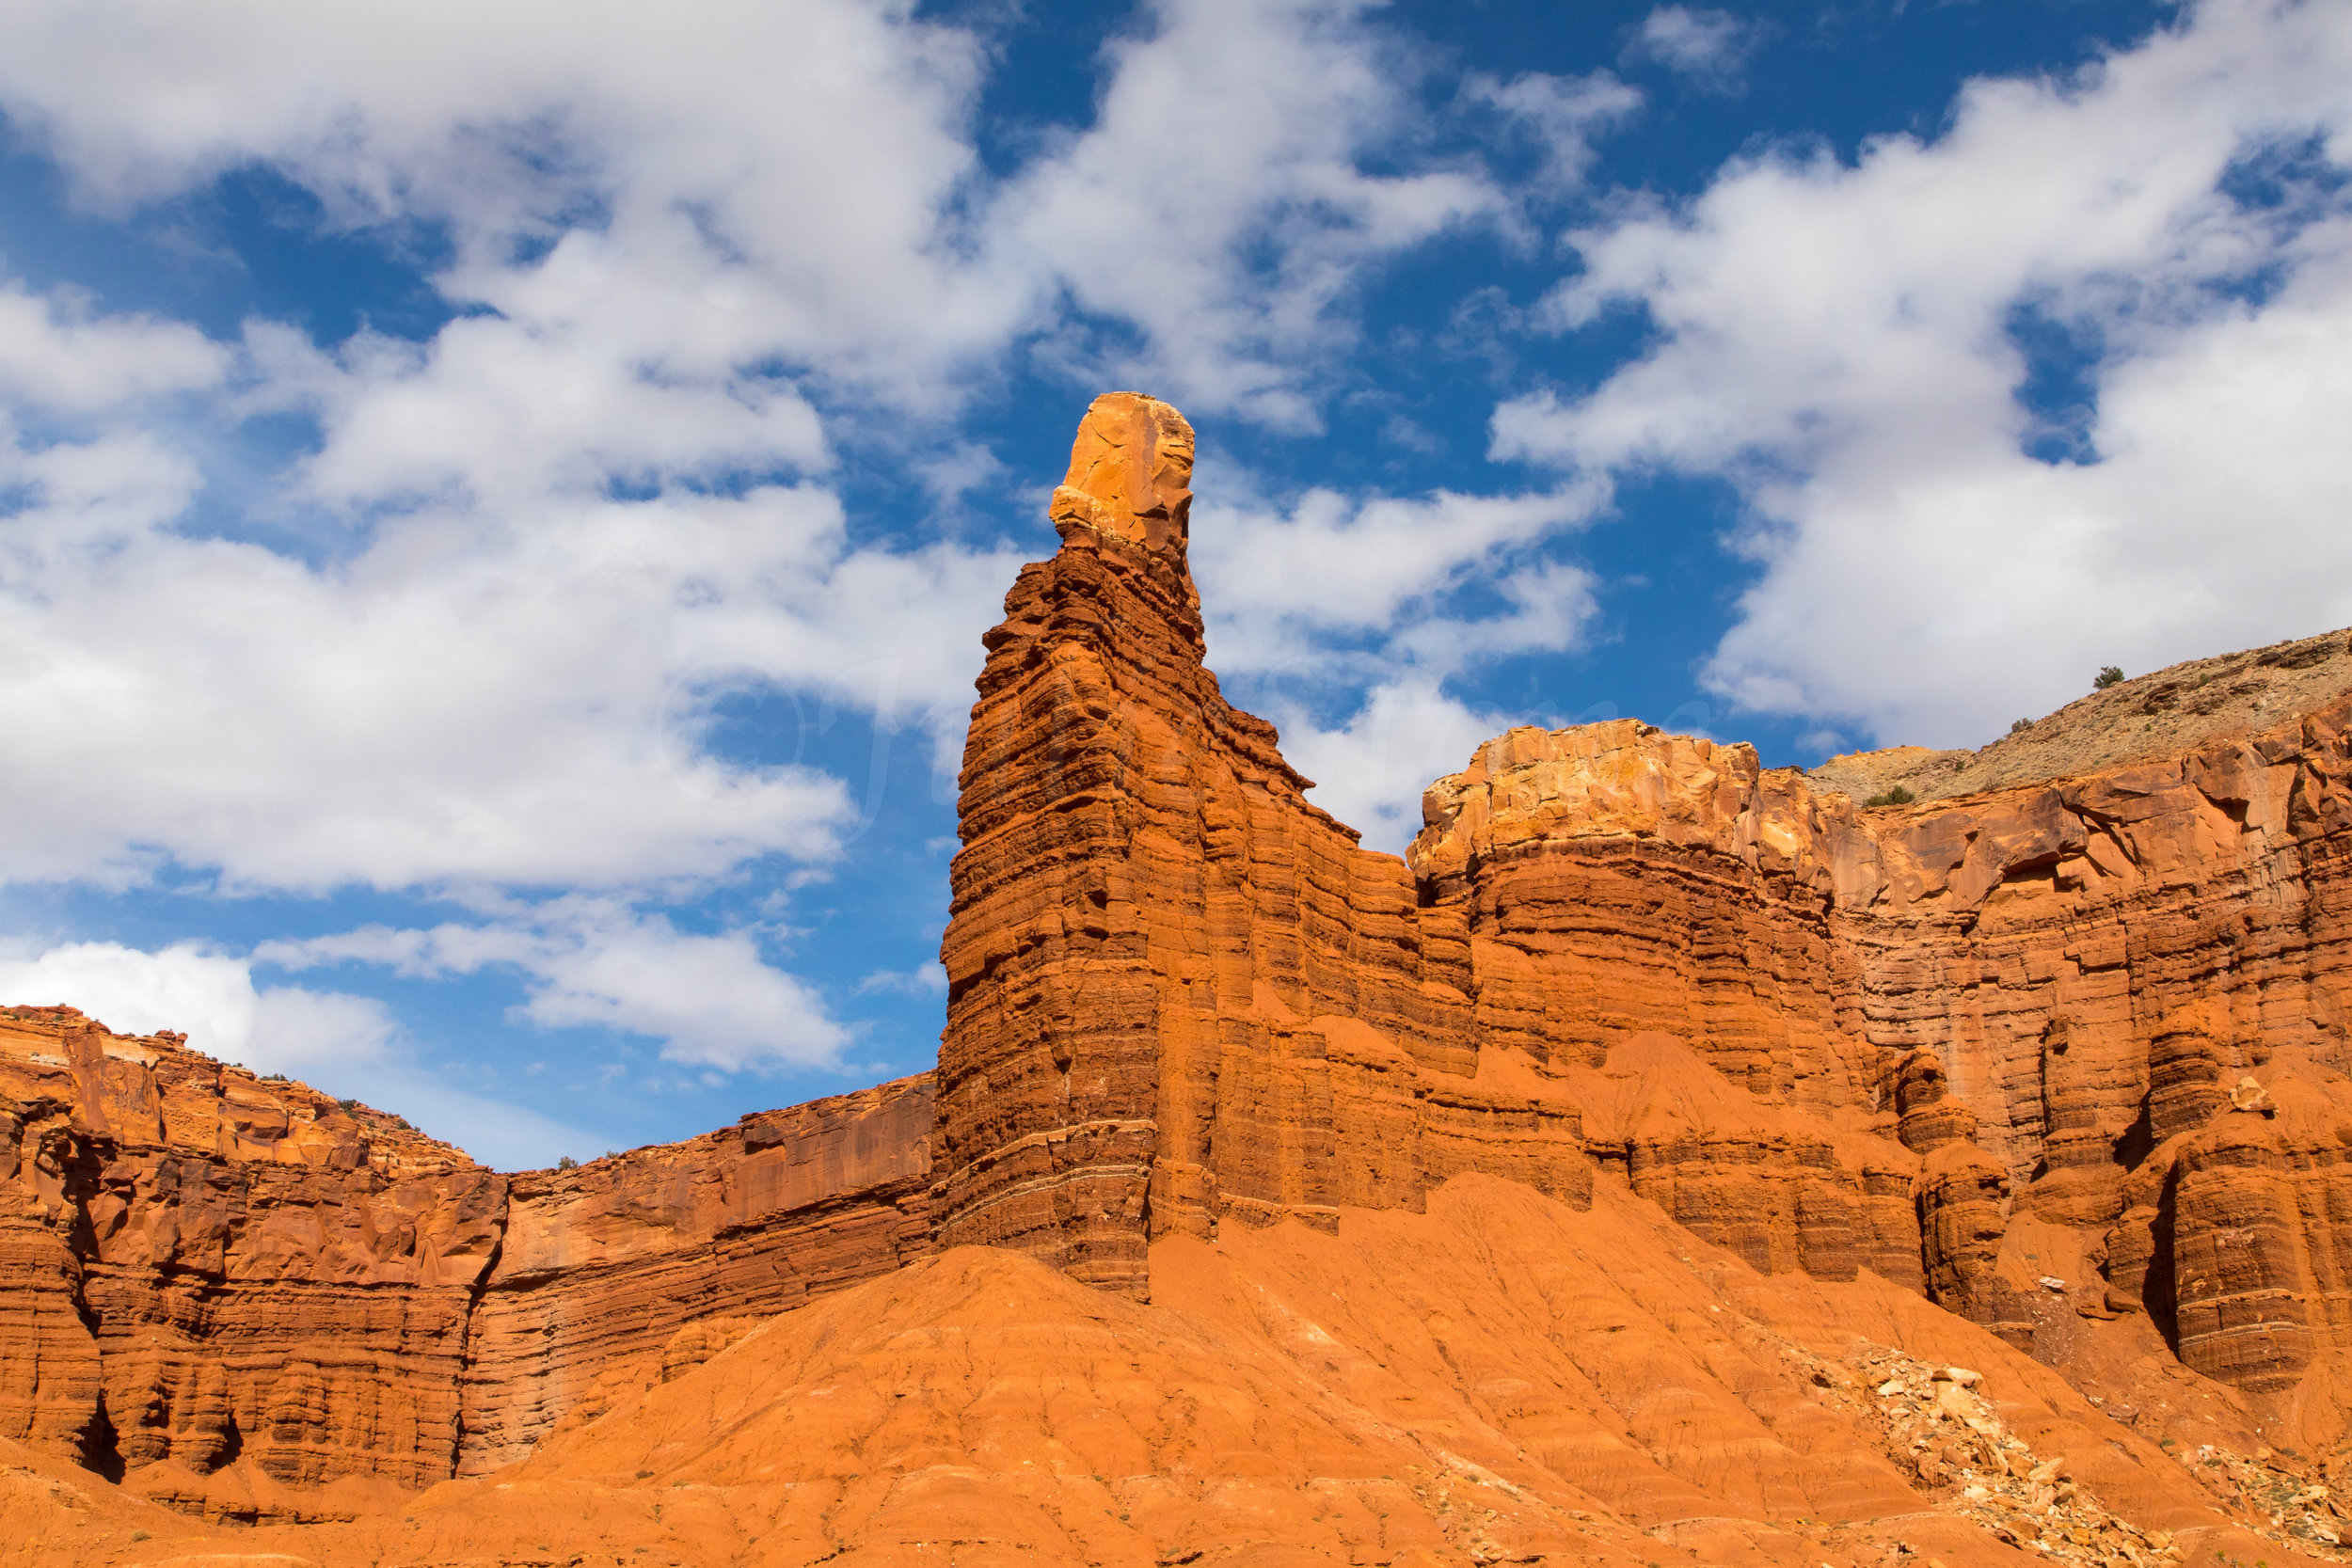 Capitol Reef National Park, Image # 1457